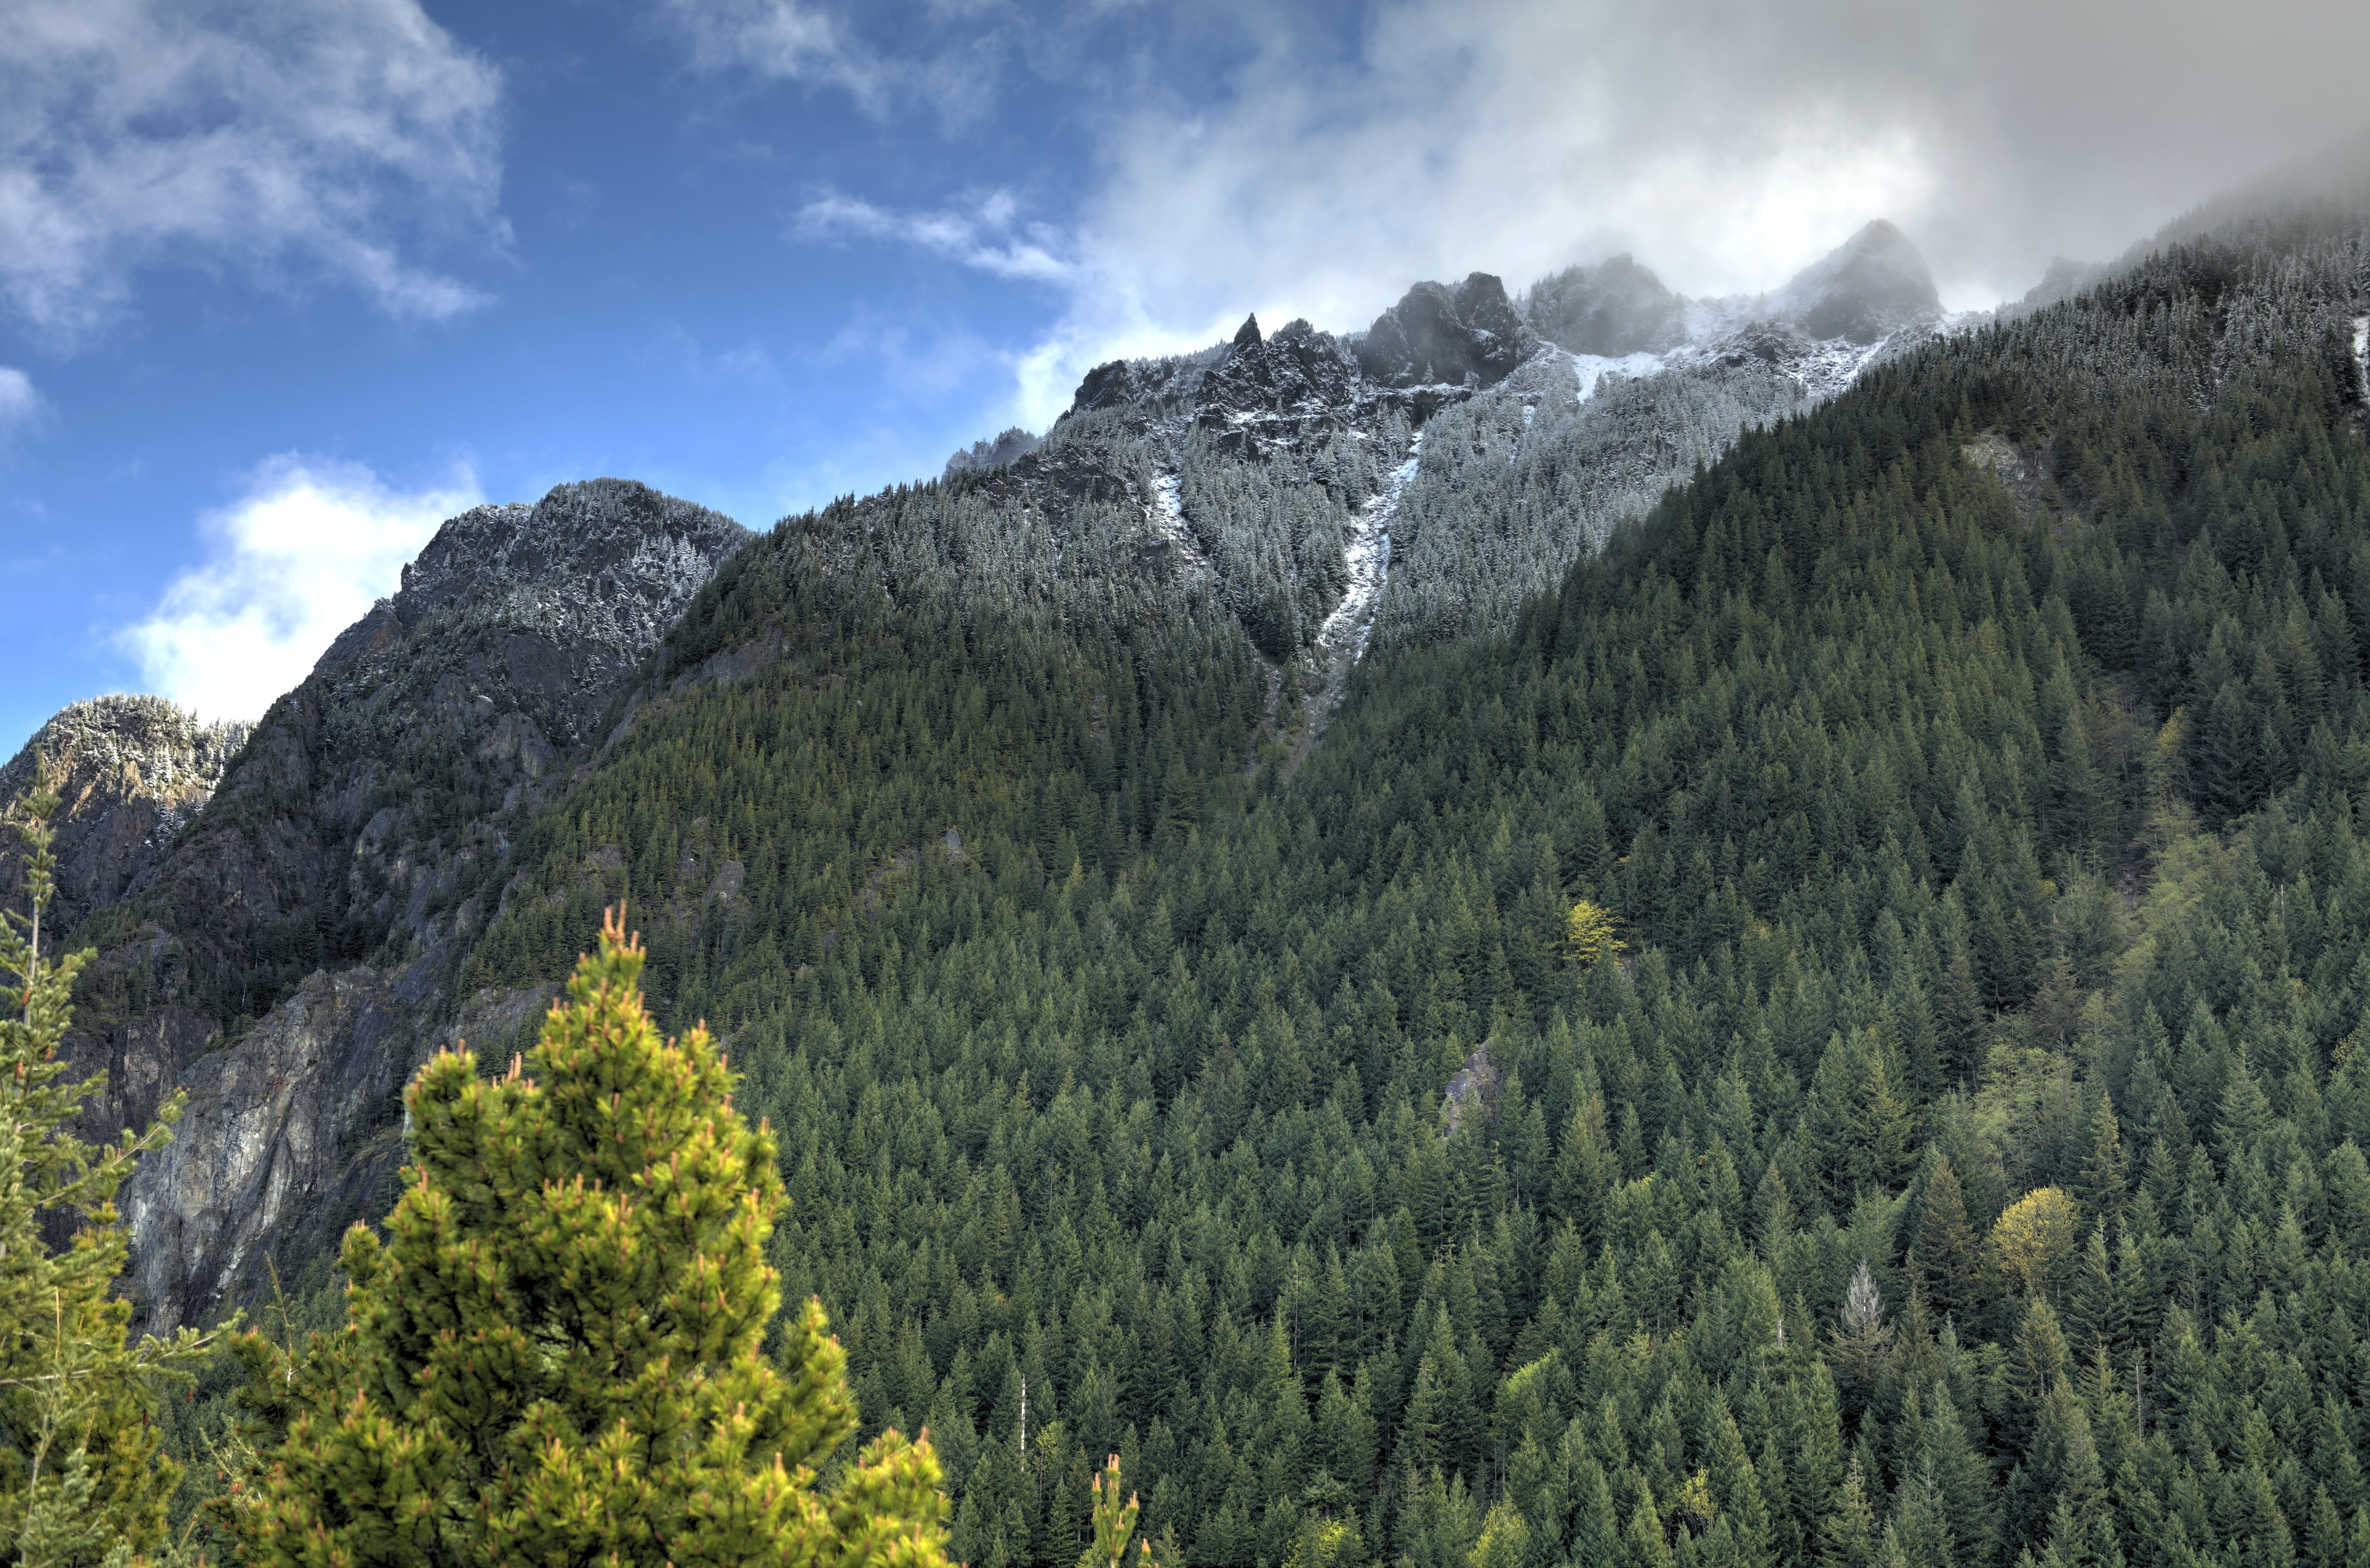 Clouds gathering over the crest of a wooded mountain